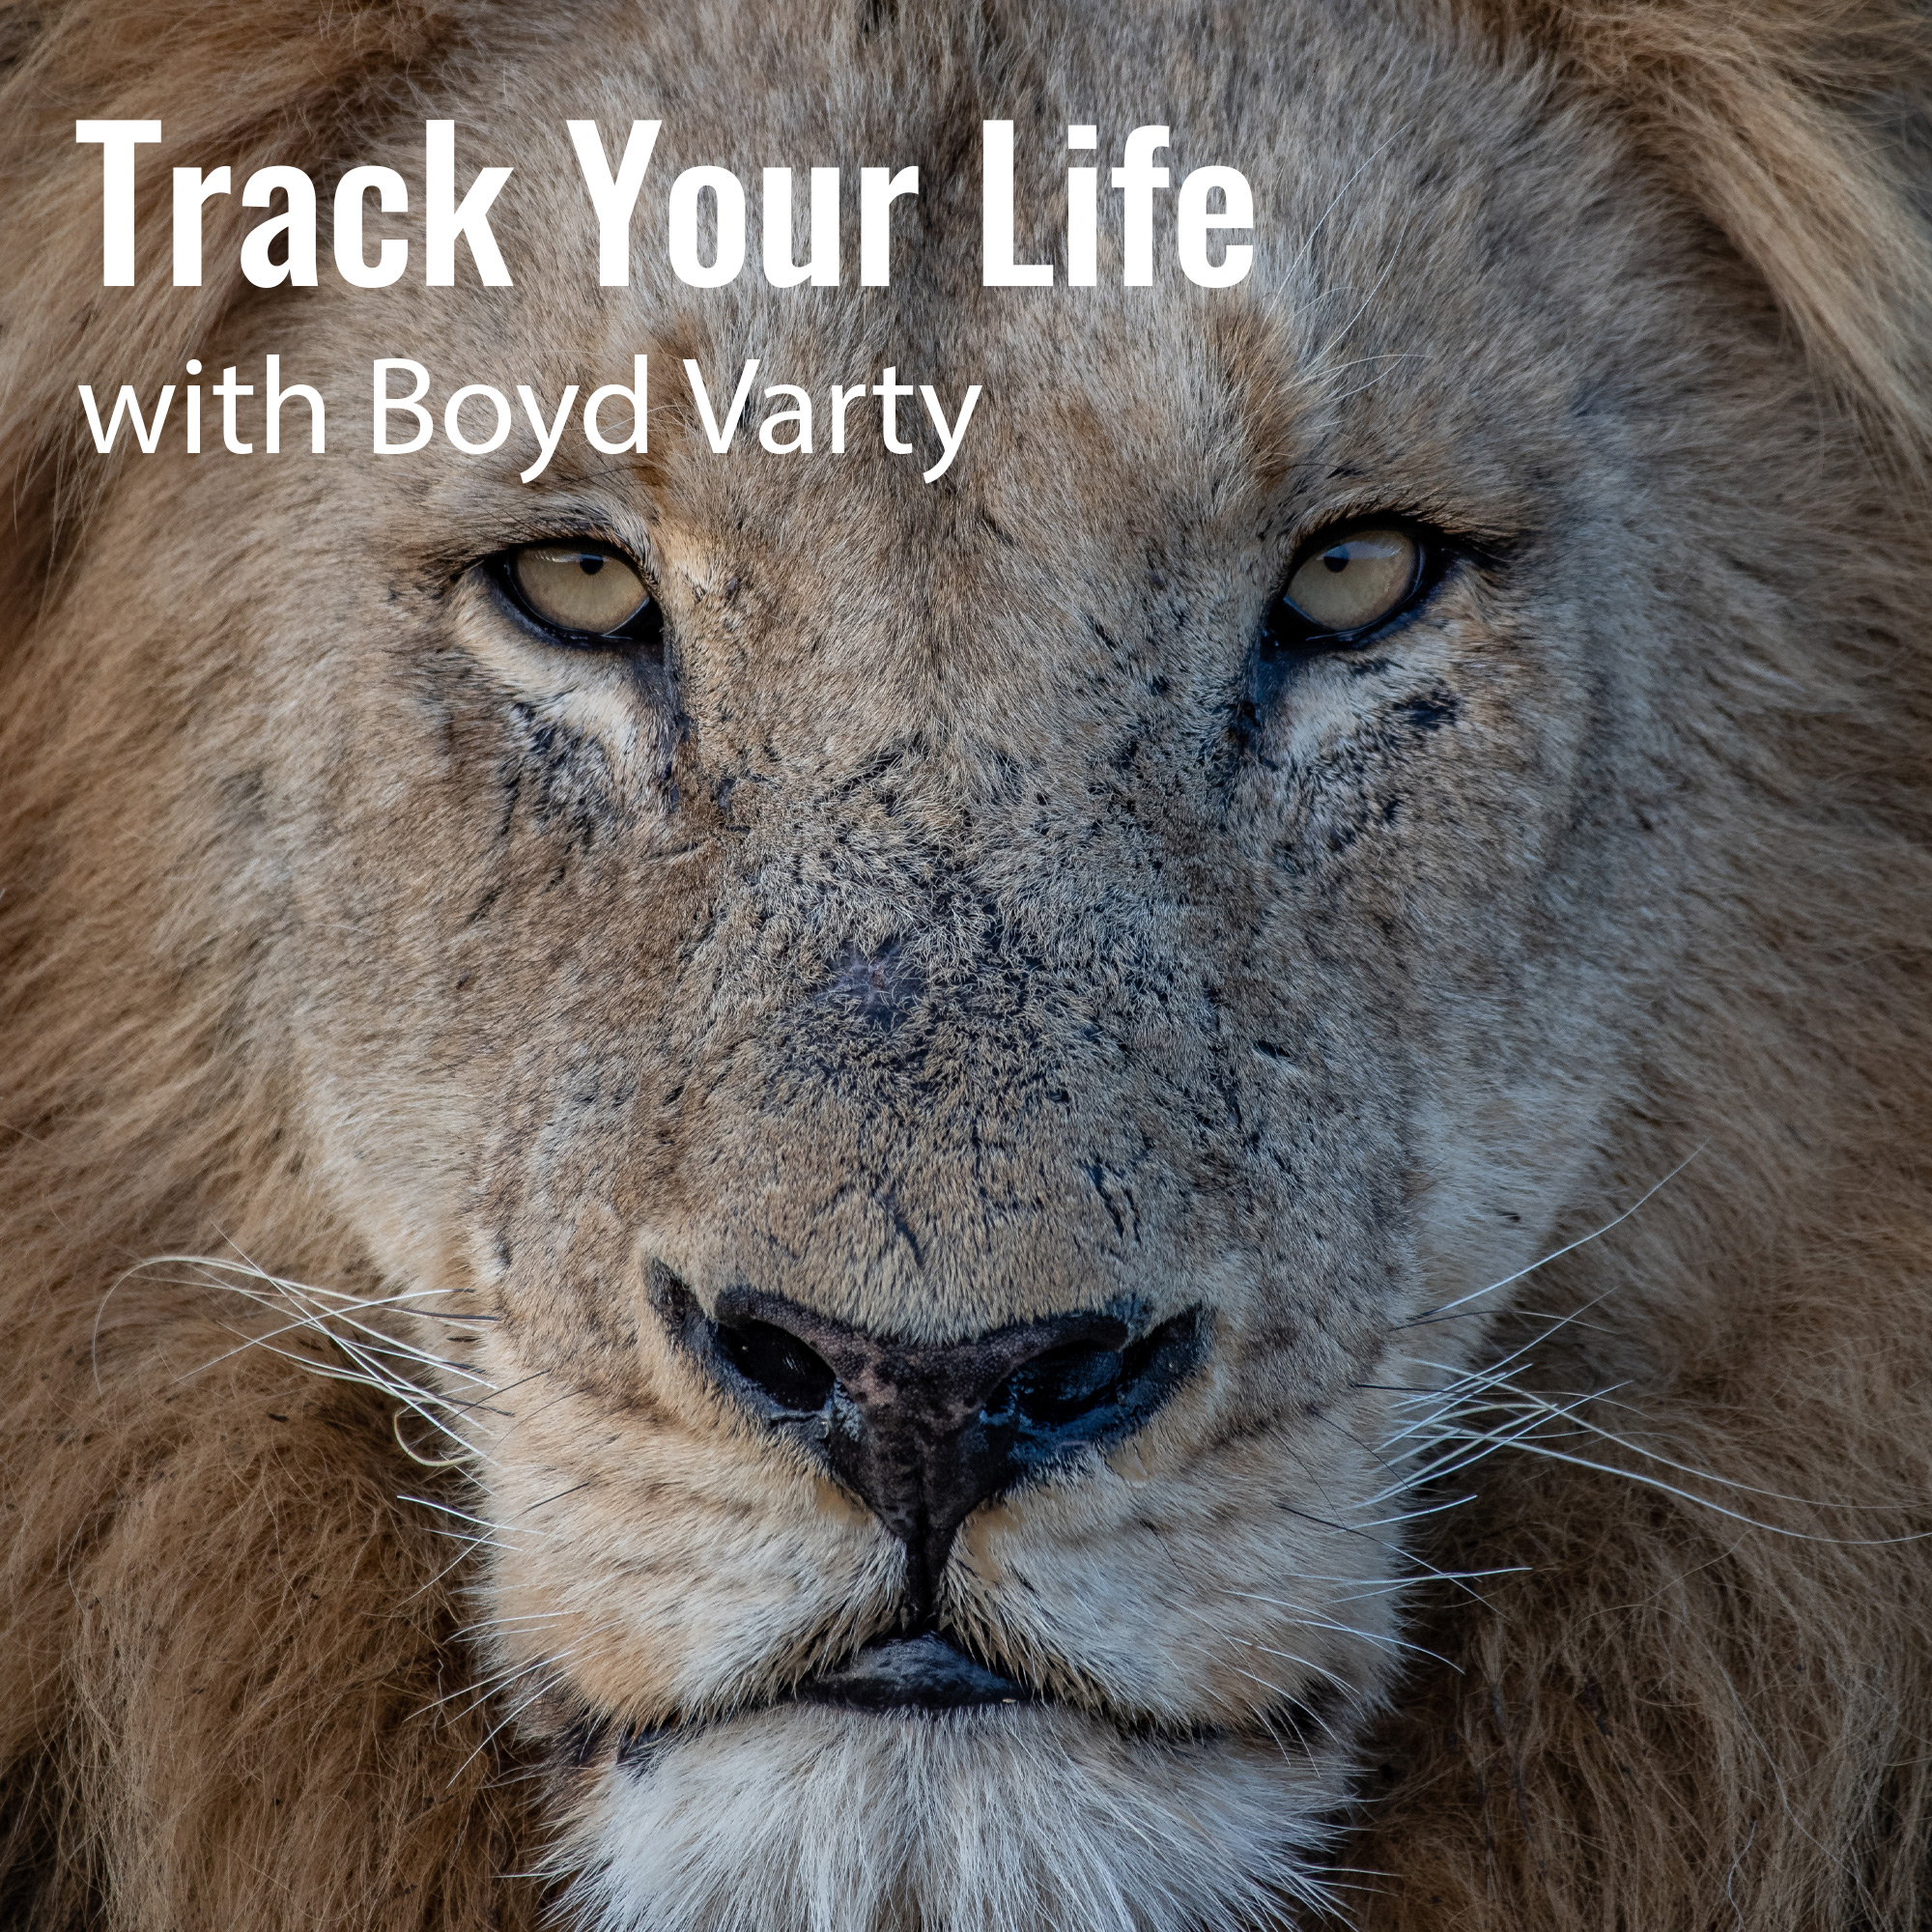 Track Your Life with Boyd Varty Episode 43